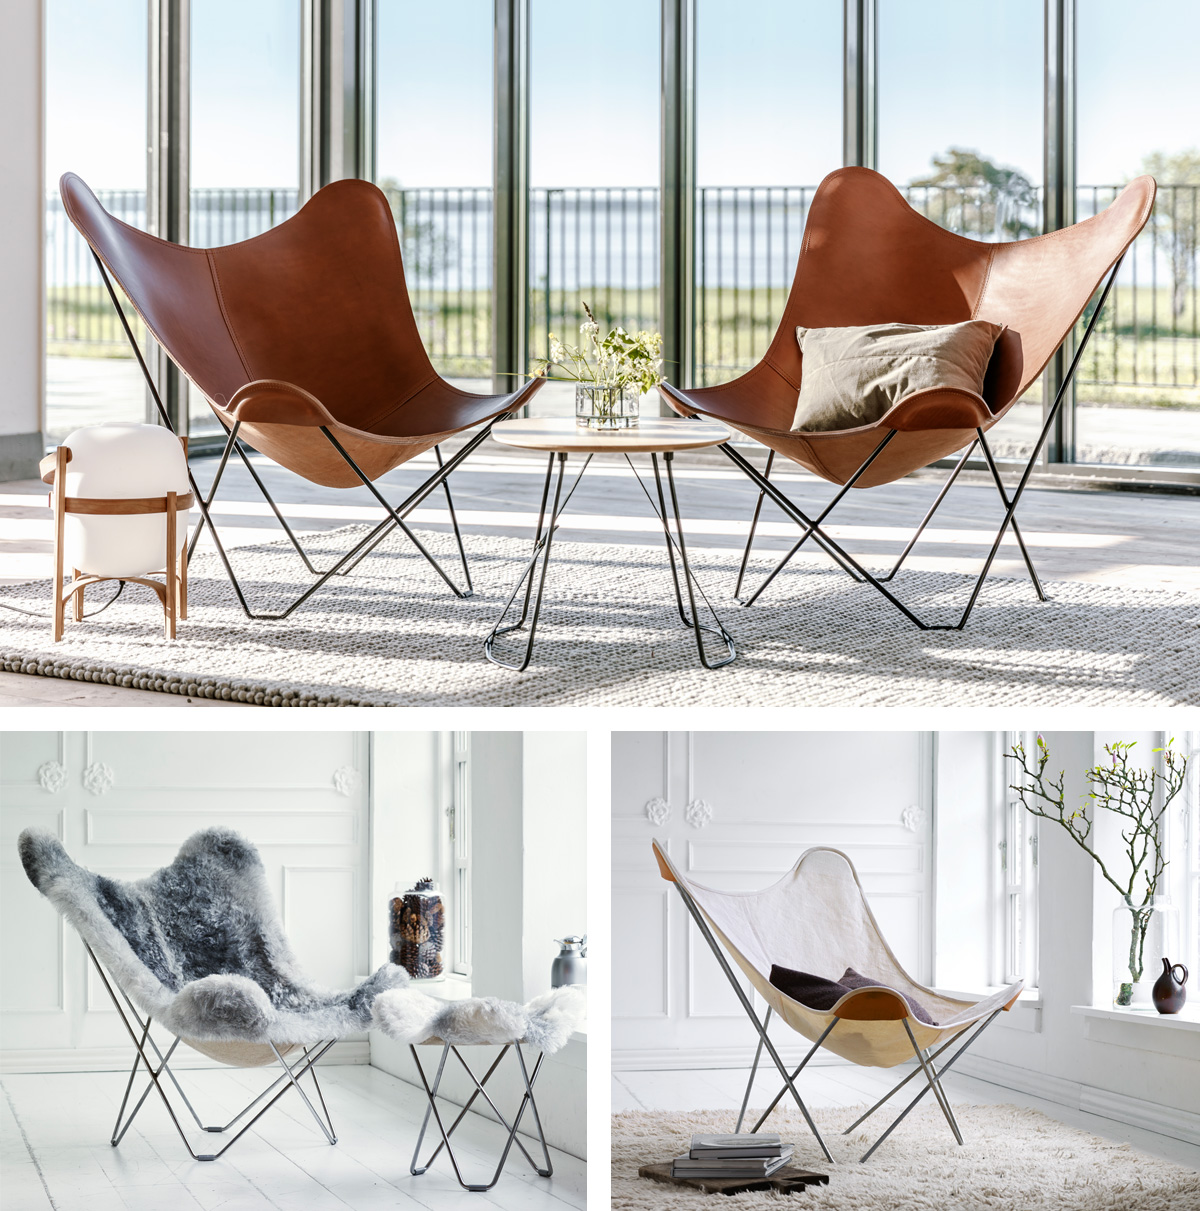 The Butterfly Chair Collection by Cuero Design